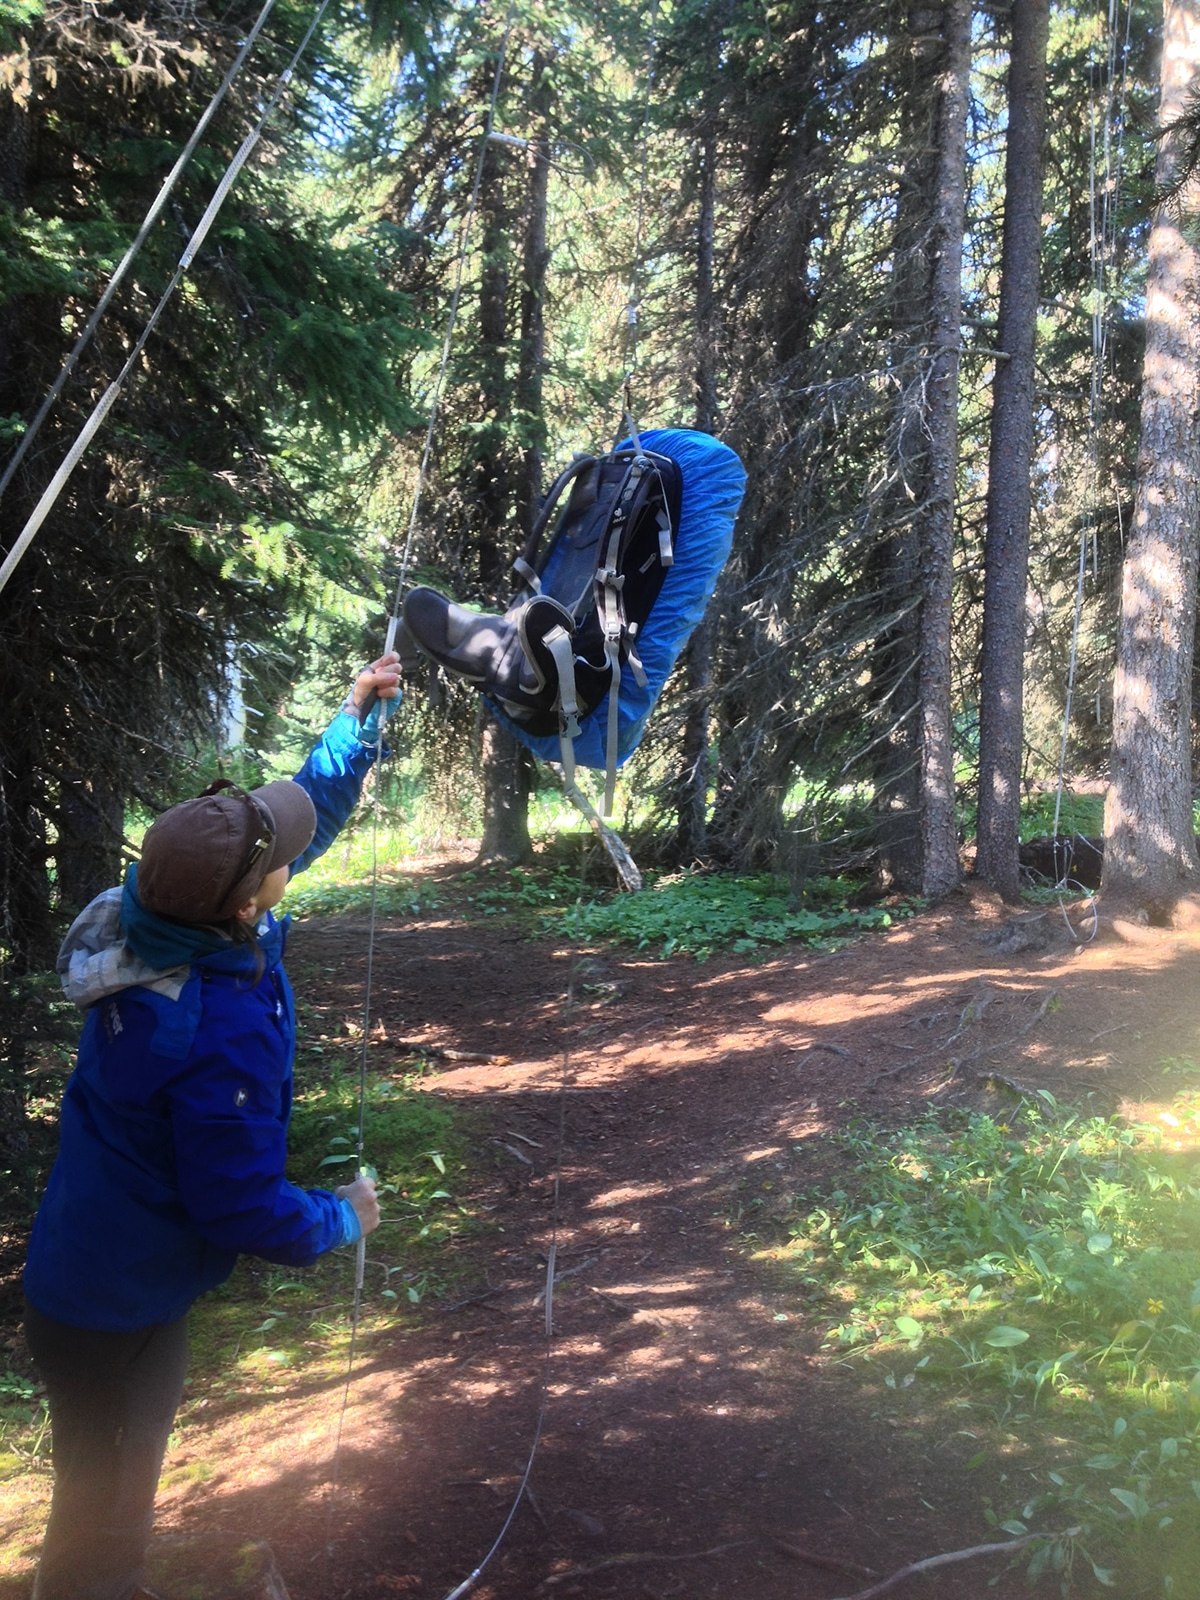 Using a bear hang is a must in lots of national parks for backpackers